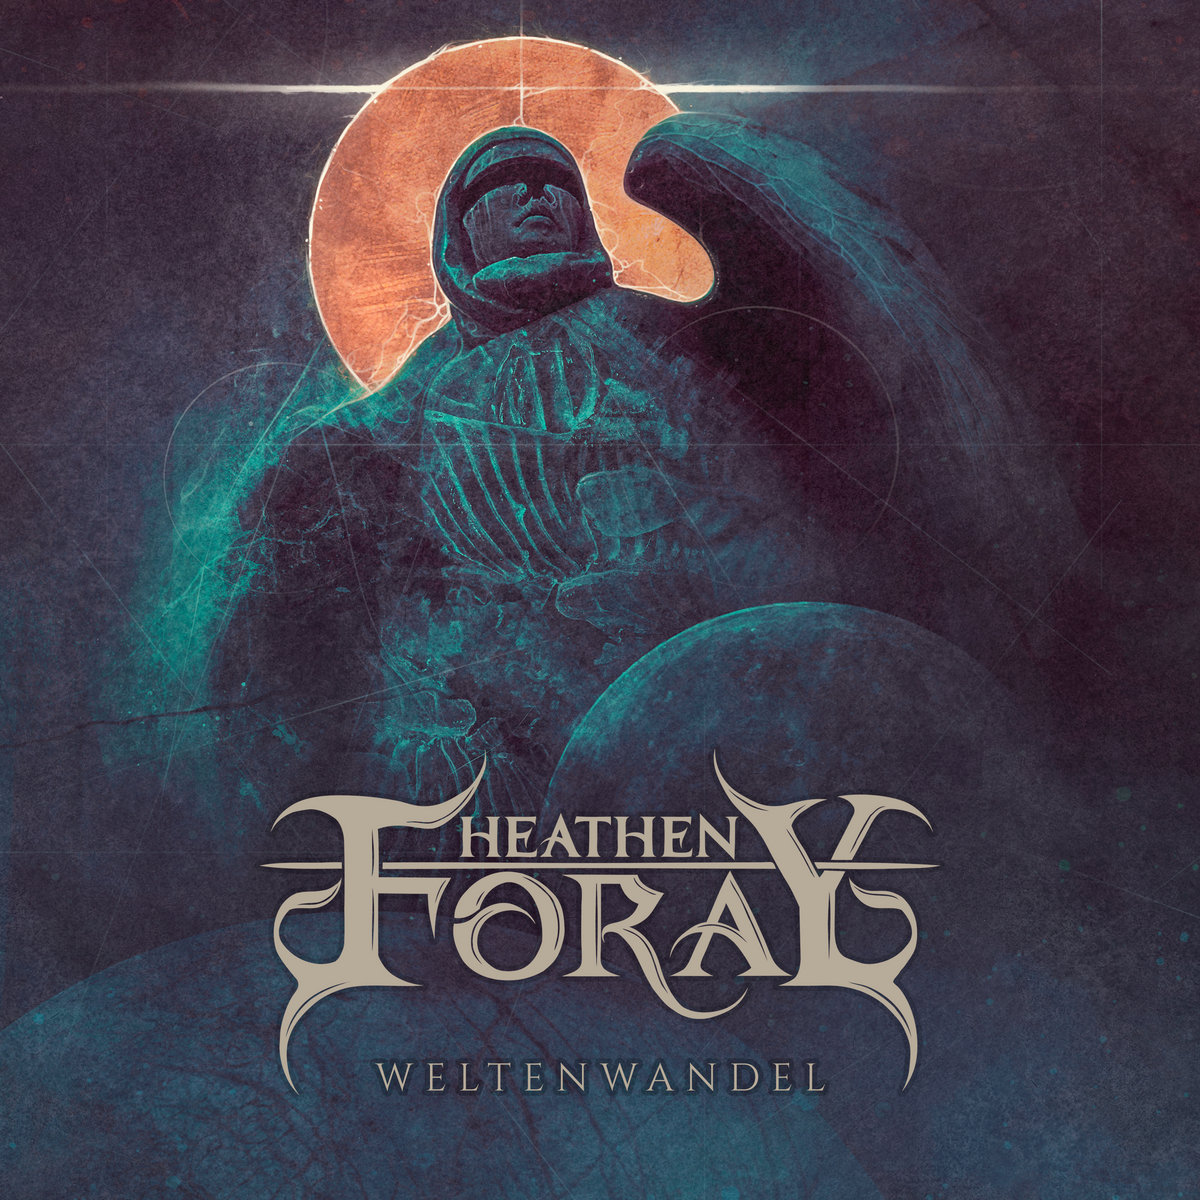 Heathen Foray⛧Weltenwandel | review